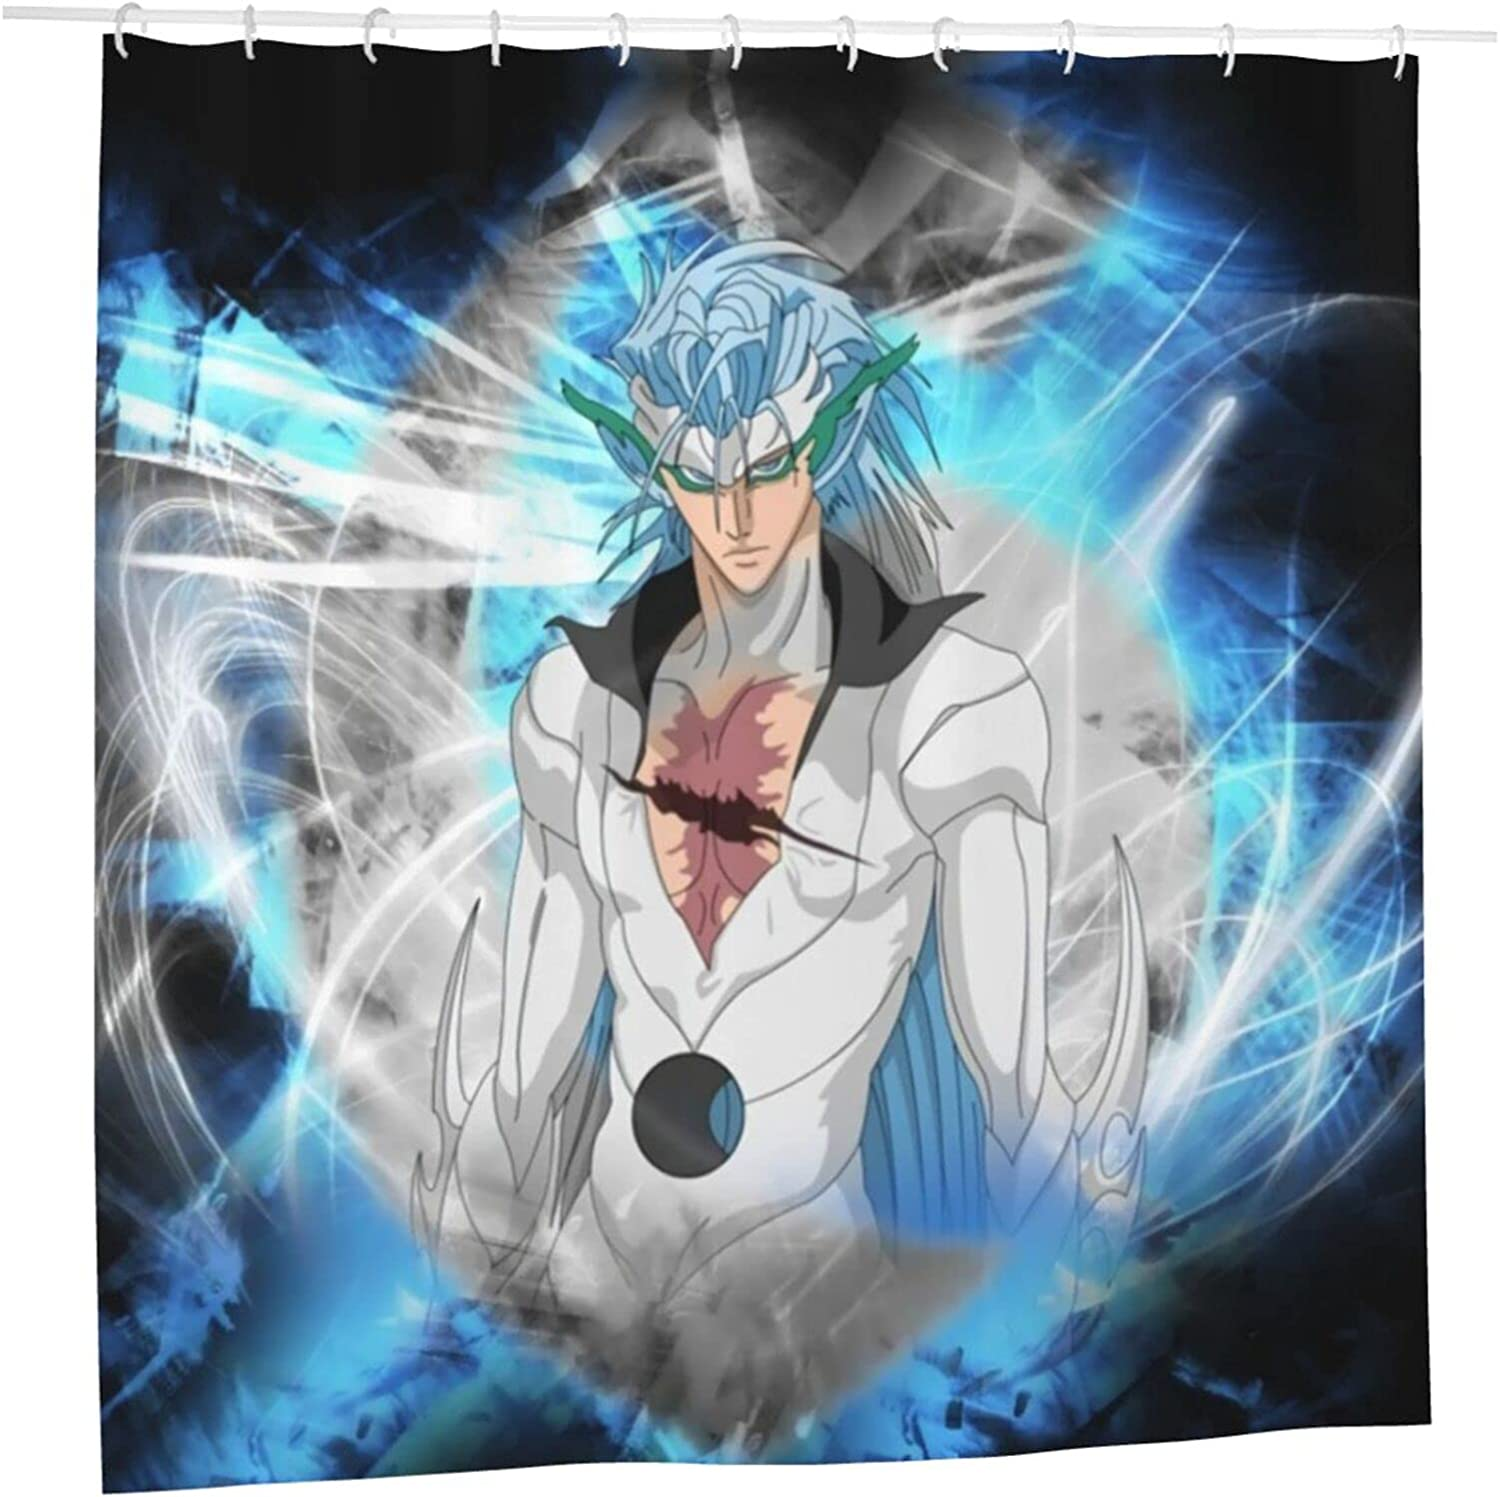 Max 90% OFF Bleach Anime Grimmjow Jeagerjaques Soldering Shower Liner Bathroom Curtain